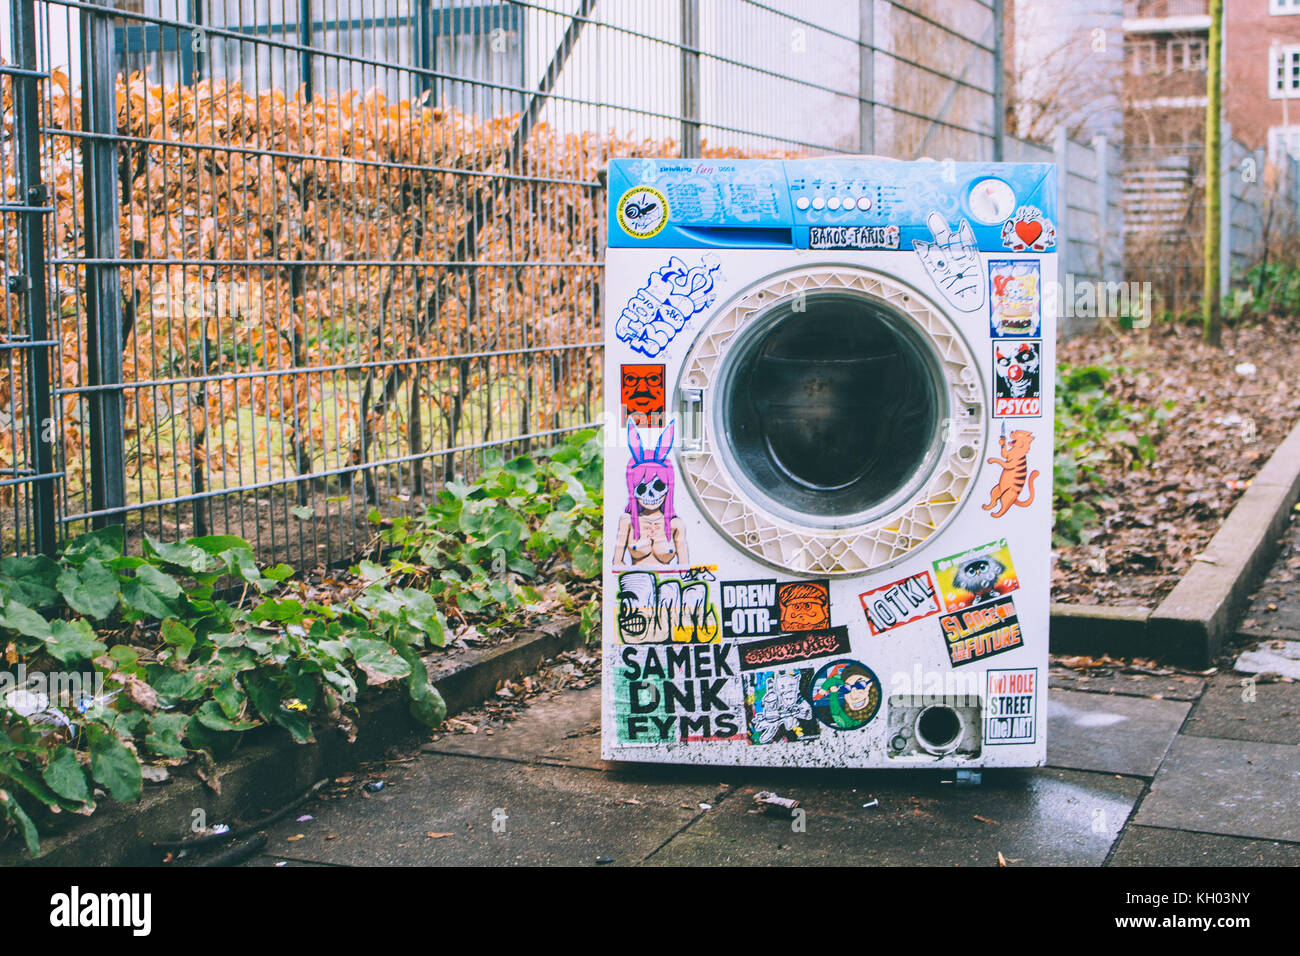 Abandoned Cool Washing Machine At The Side Of A Street With Lots Of Stickers All Over It Stock Photo Alamy